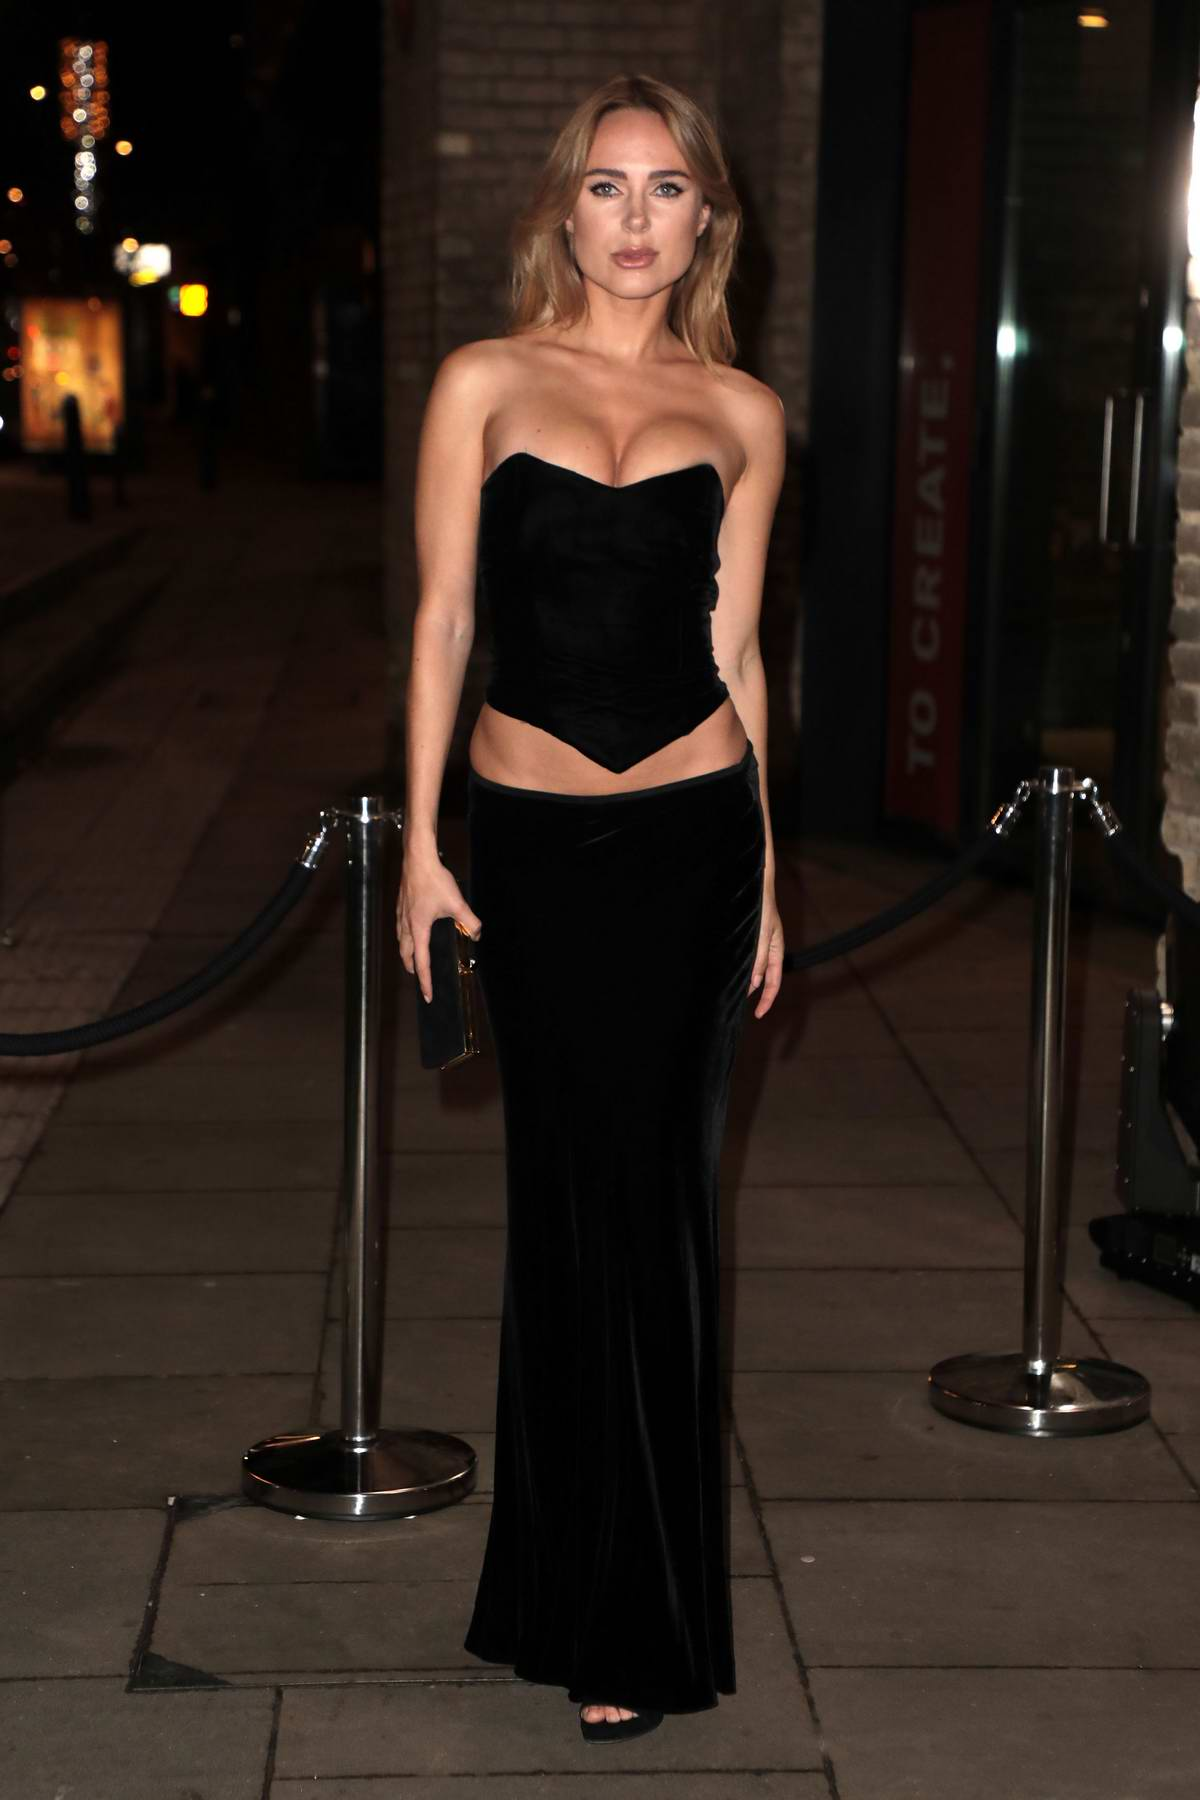 Kimberley Garner attends the Naked Heart Foundation Fabulous Fund Fair during London Fashion Week in London, UK